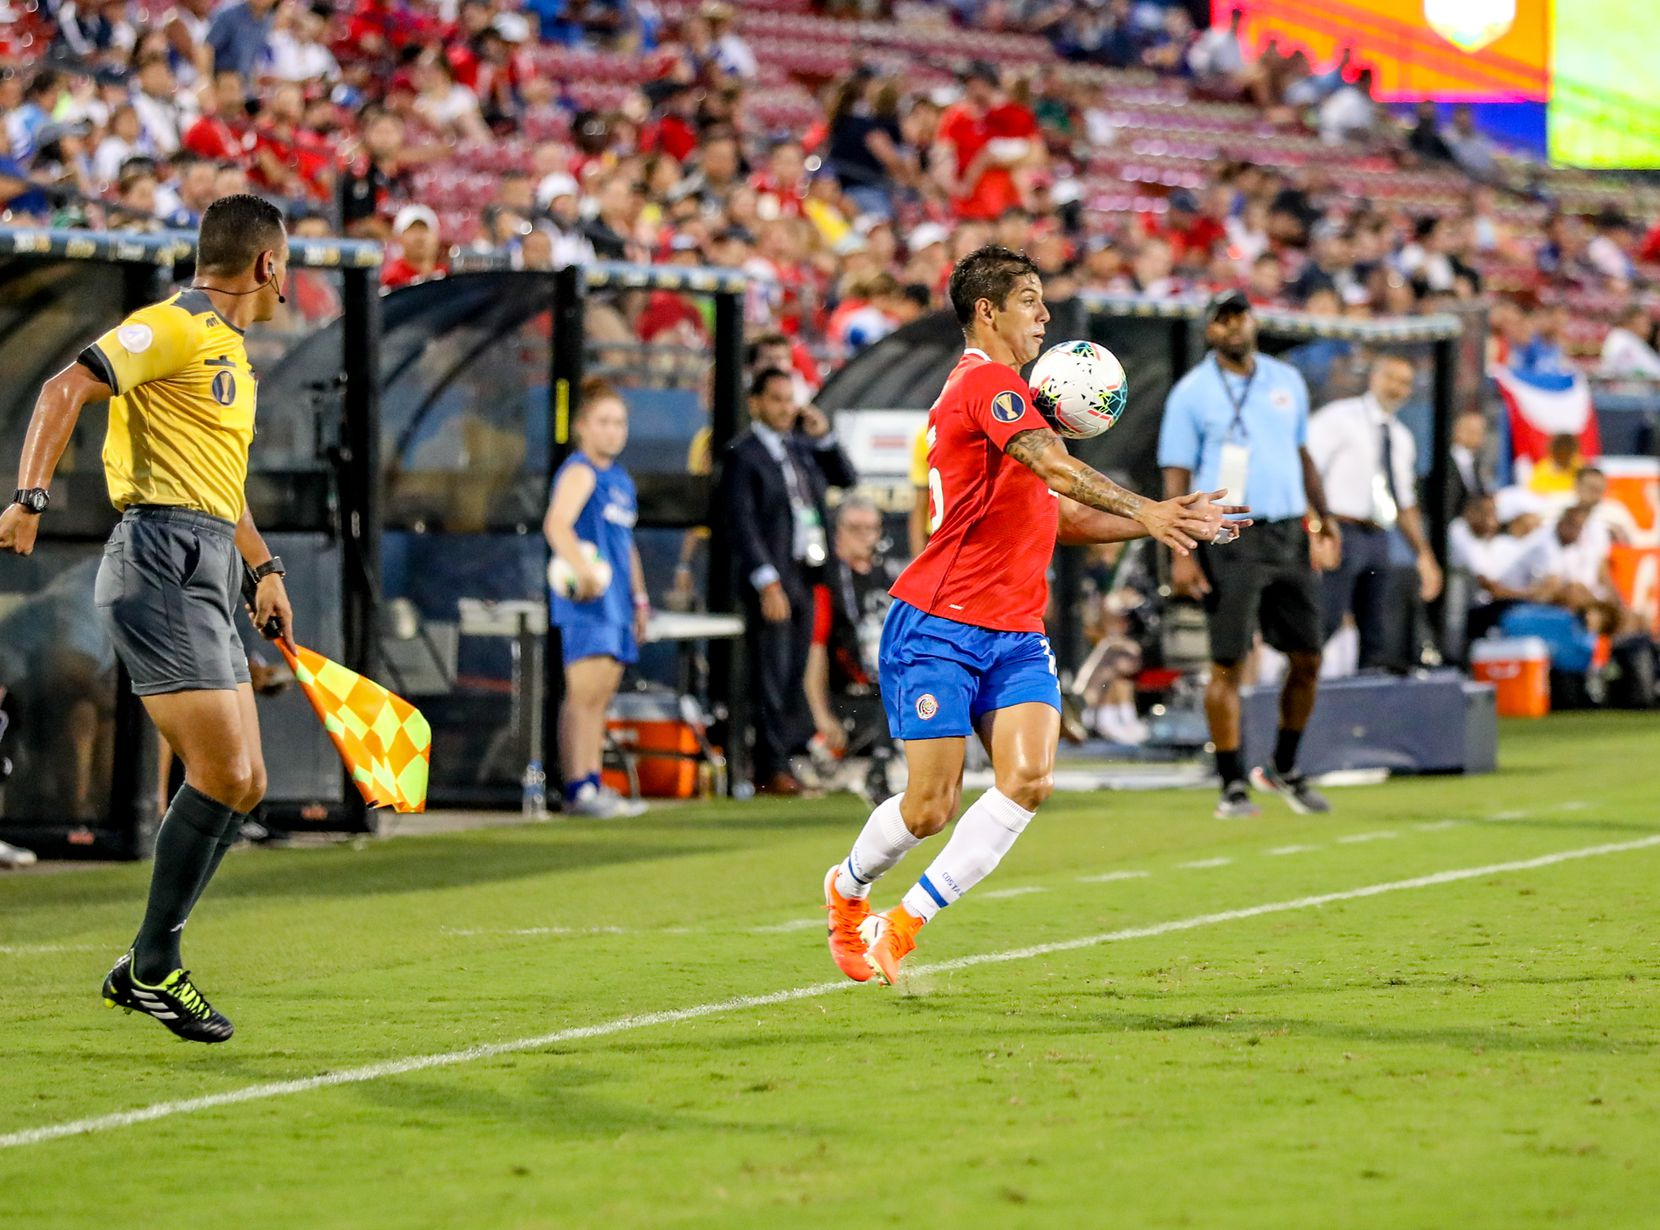 Cristian Gamboa of Costa Rica chest traps the ball in the 2019 Gold Cup at Toyota Stadium. (6-20-19)